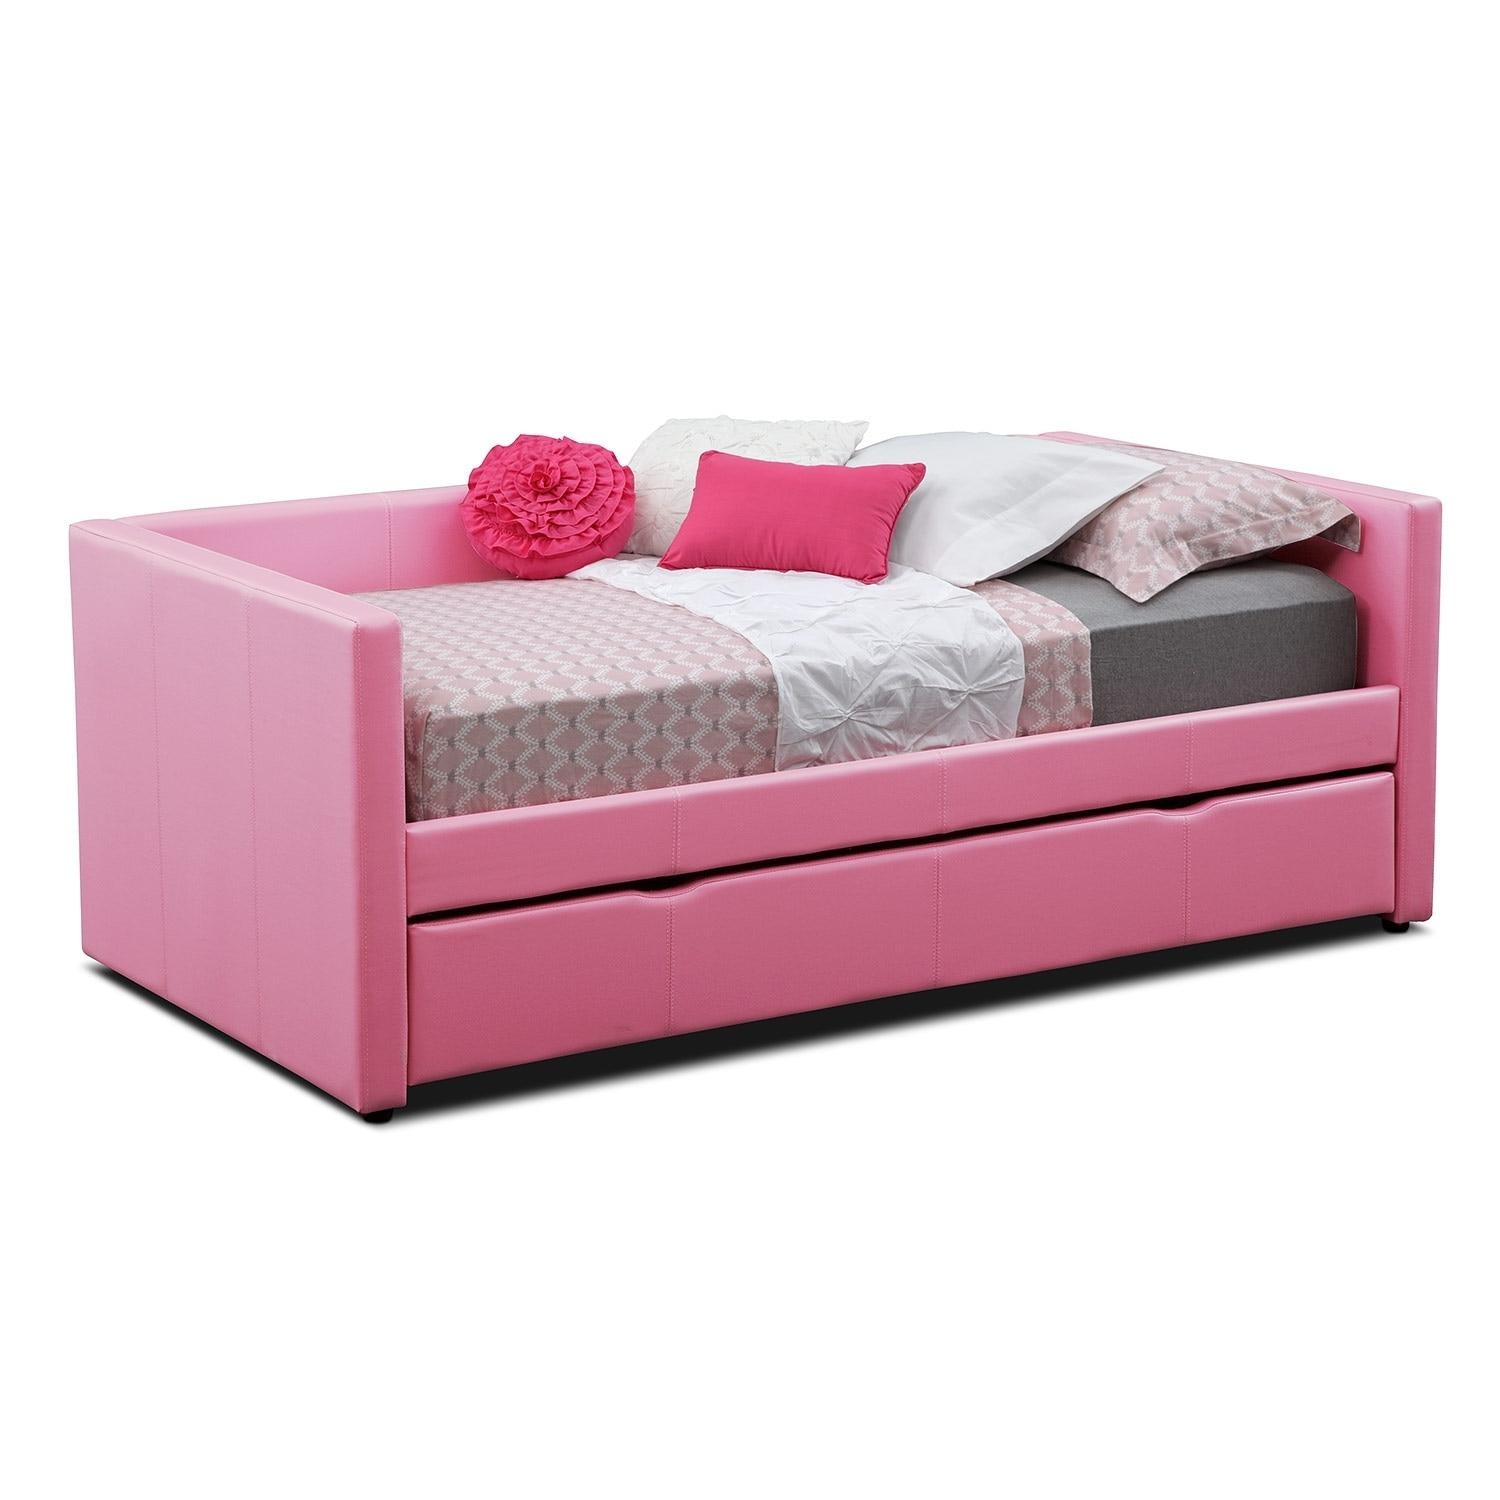 Daybeds & Trundle Beds | Bedroom Furniture | Value City Furniture For Sofas Daybed With Trundle (Image 4 of 20)